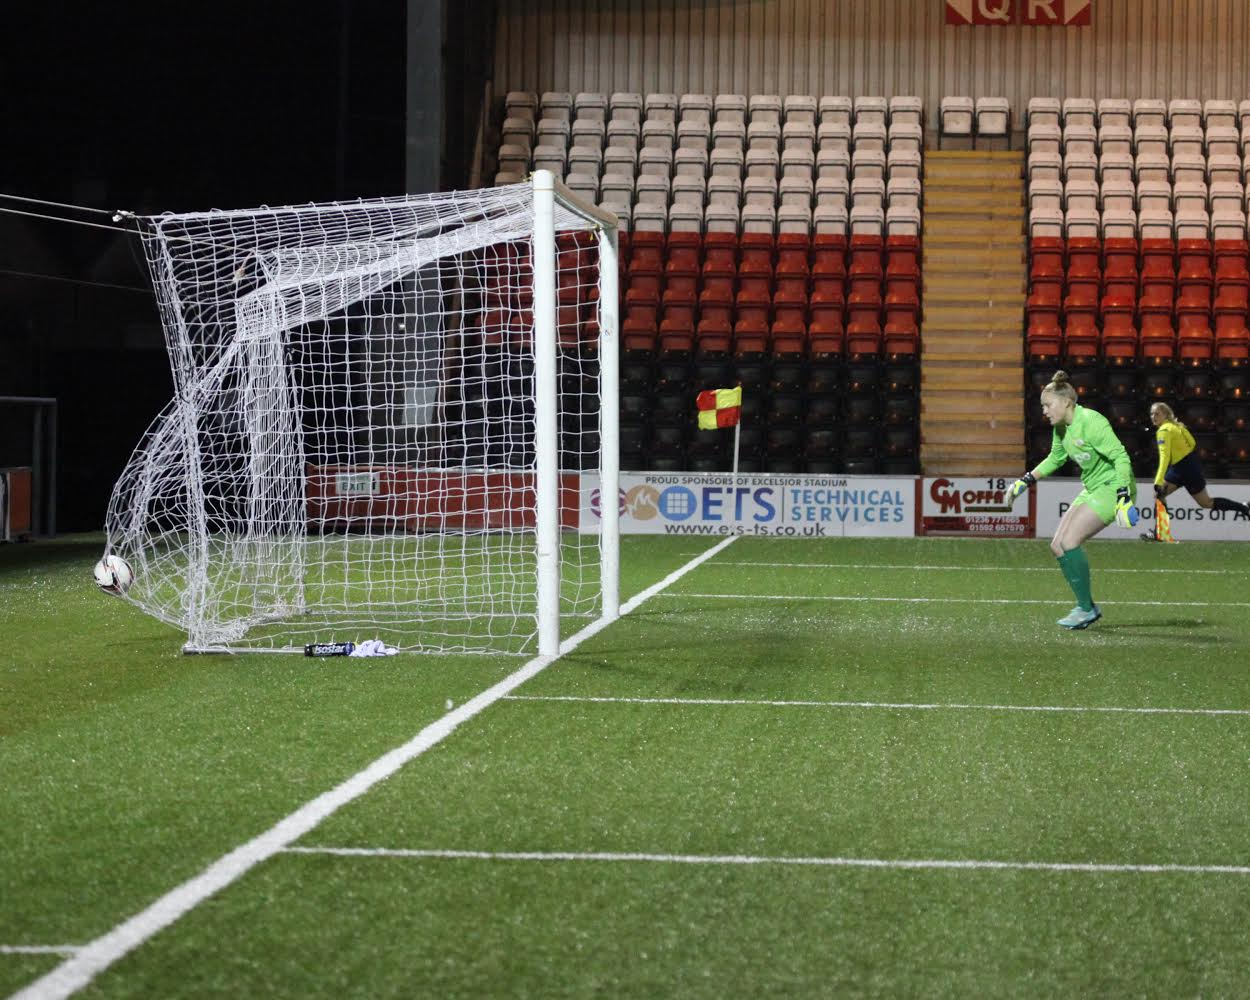 The Winning Goal. Image by Andy Buist